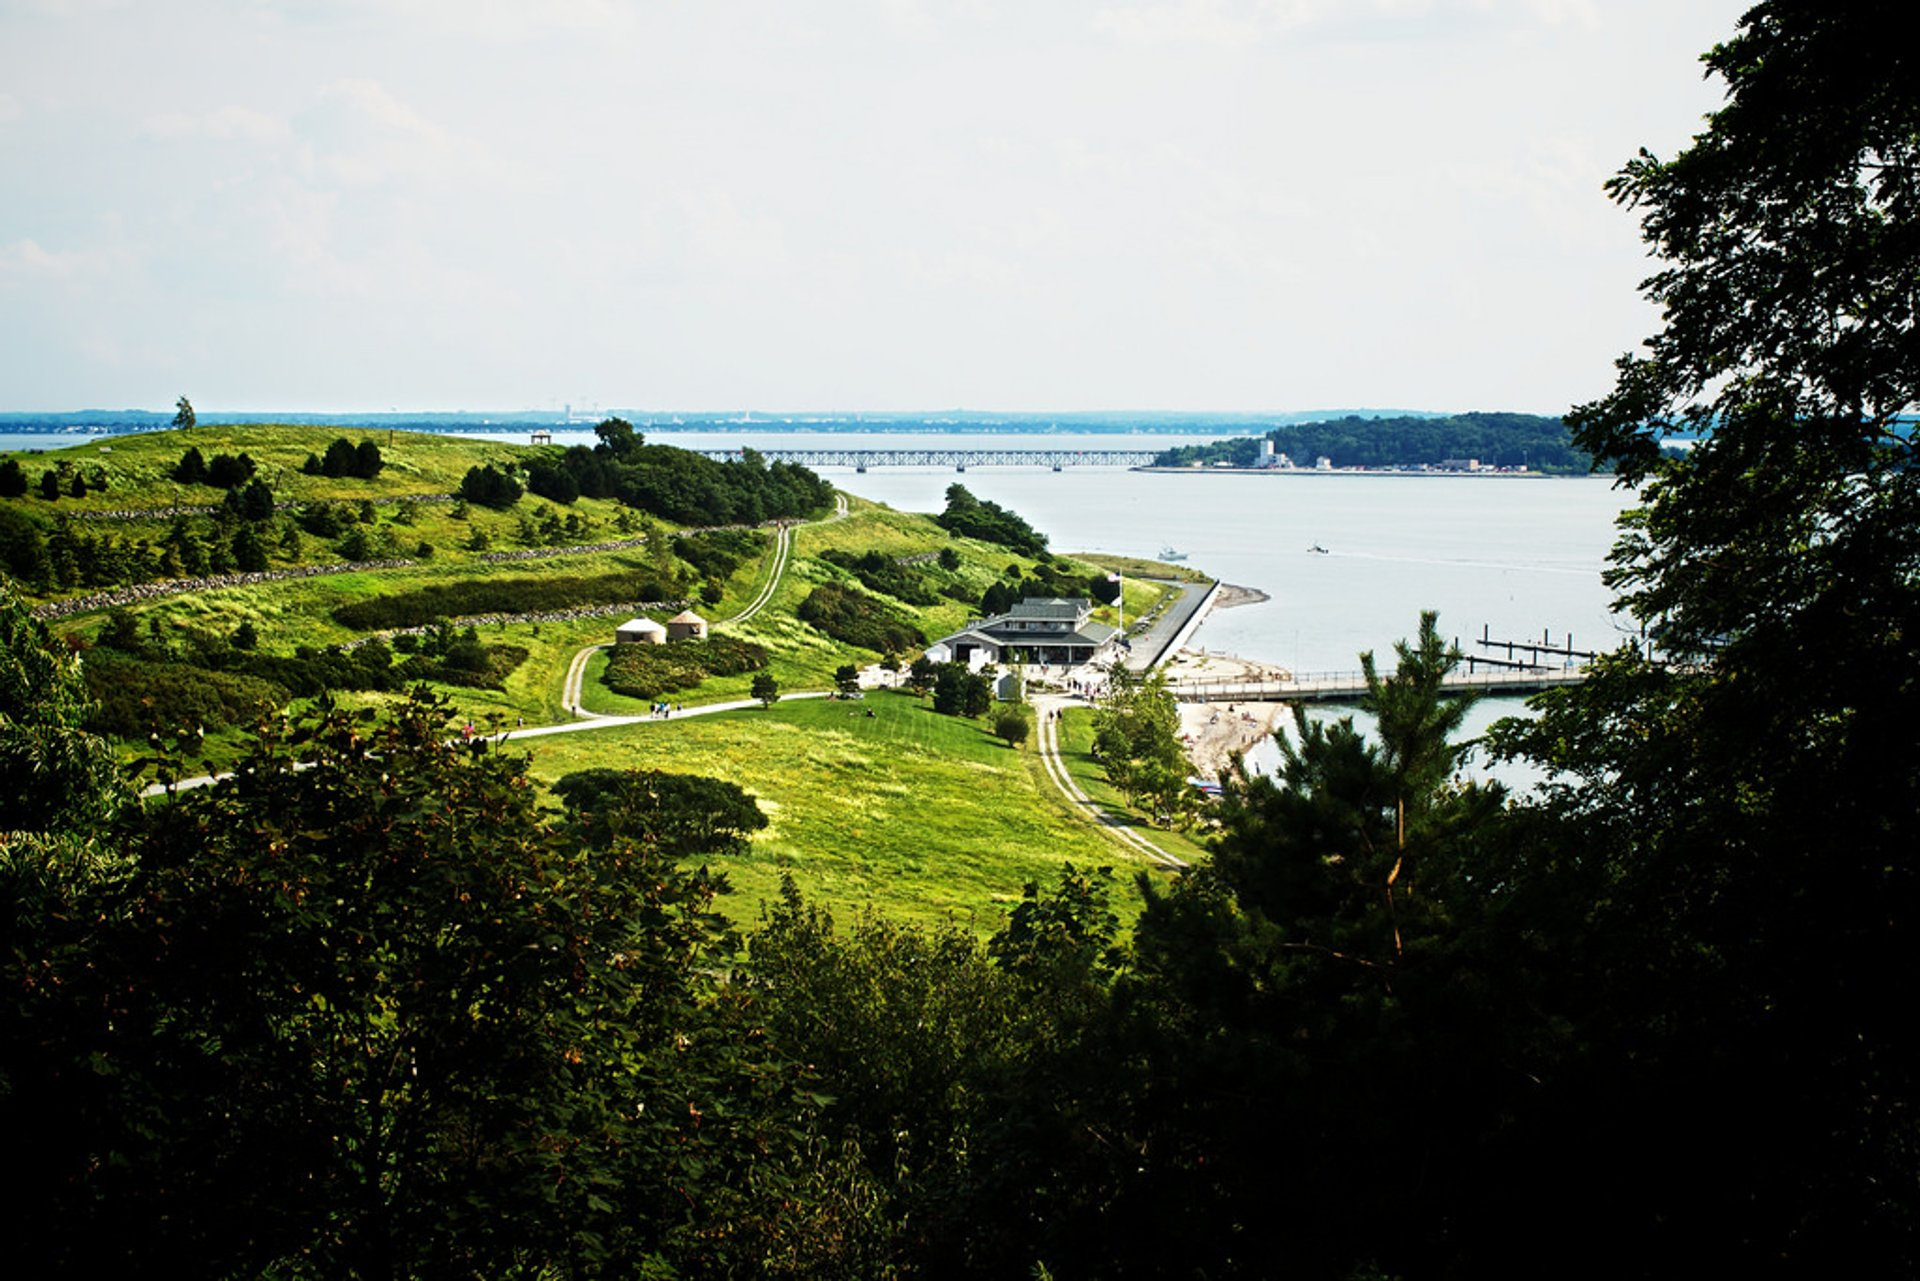 Spectacle Island 2020